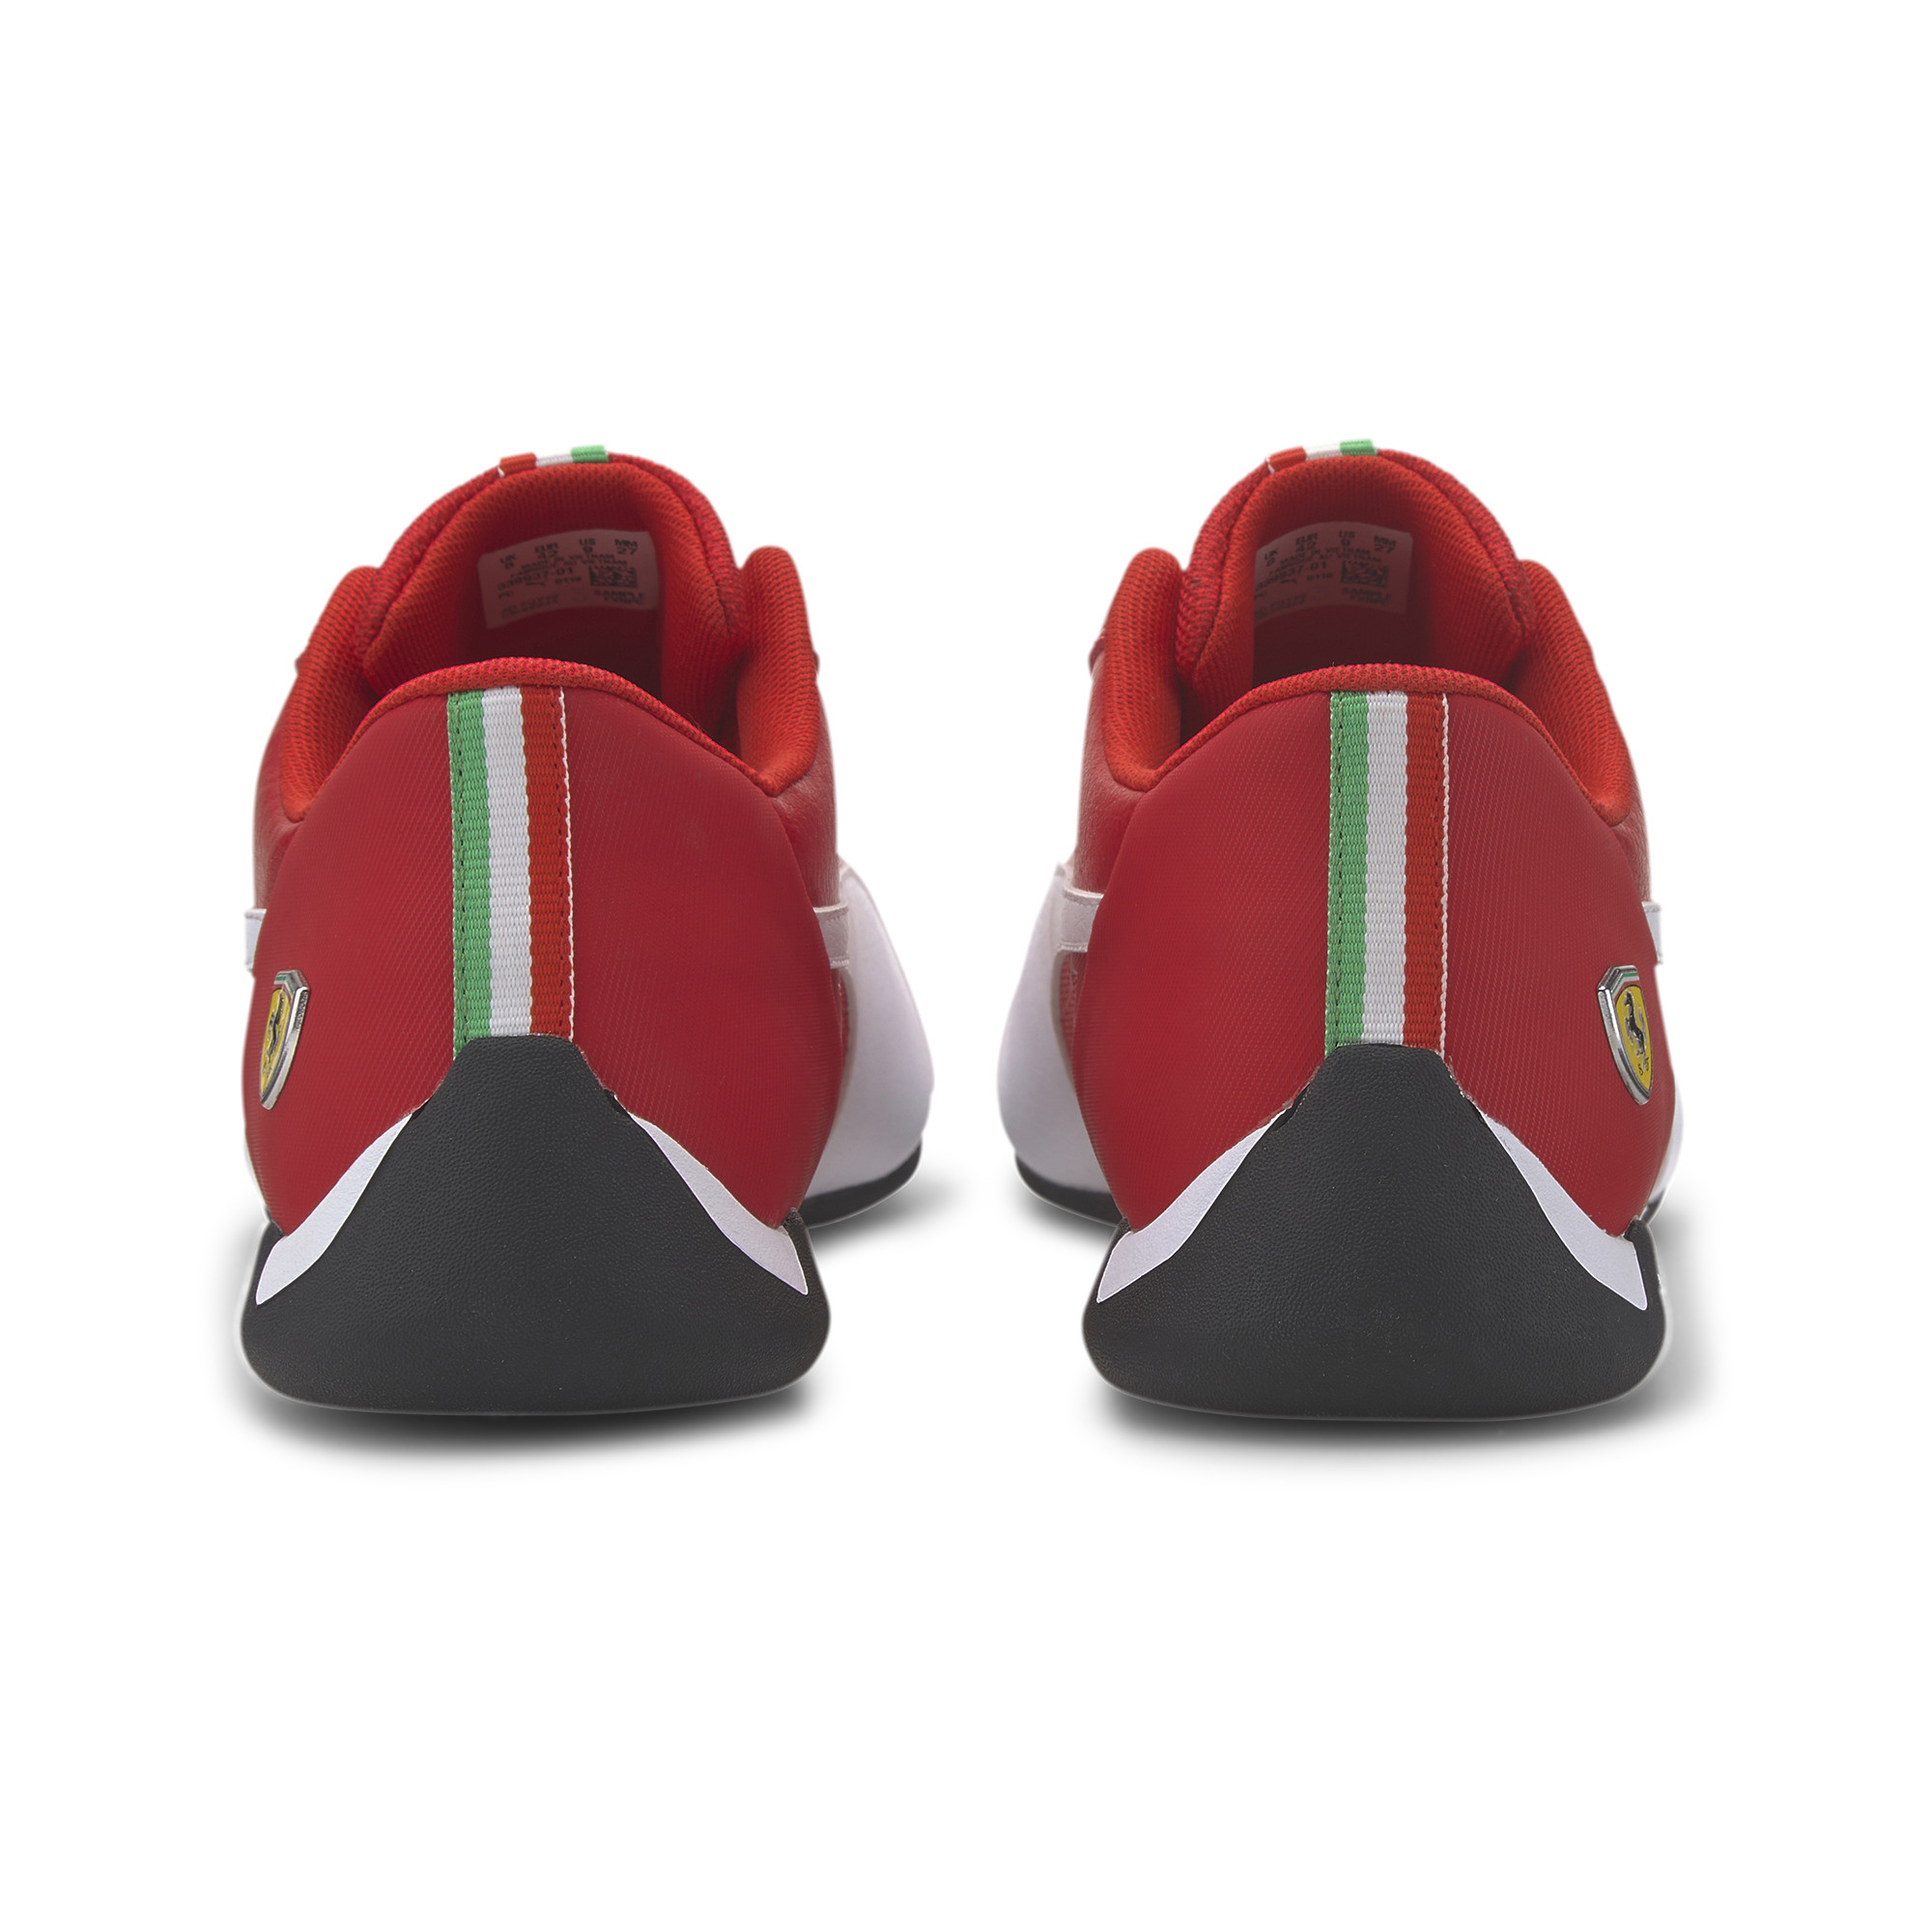 PUMA-Men-039-s-Scuderia-Ferrari-R-Cat-Motorsport-Shoes thumbnail 3